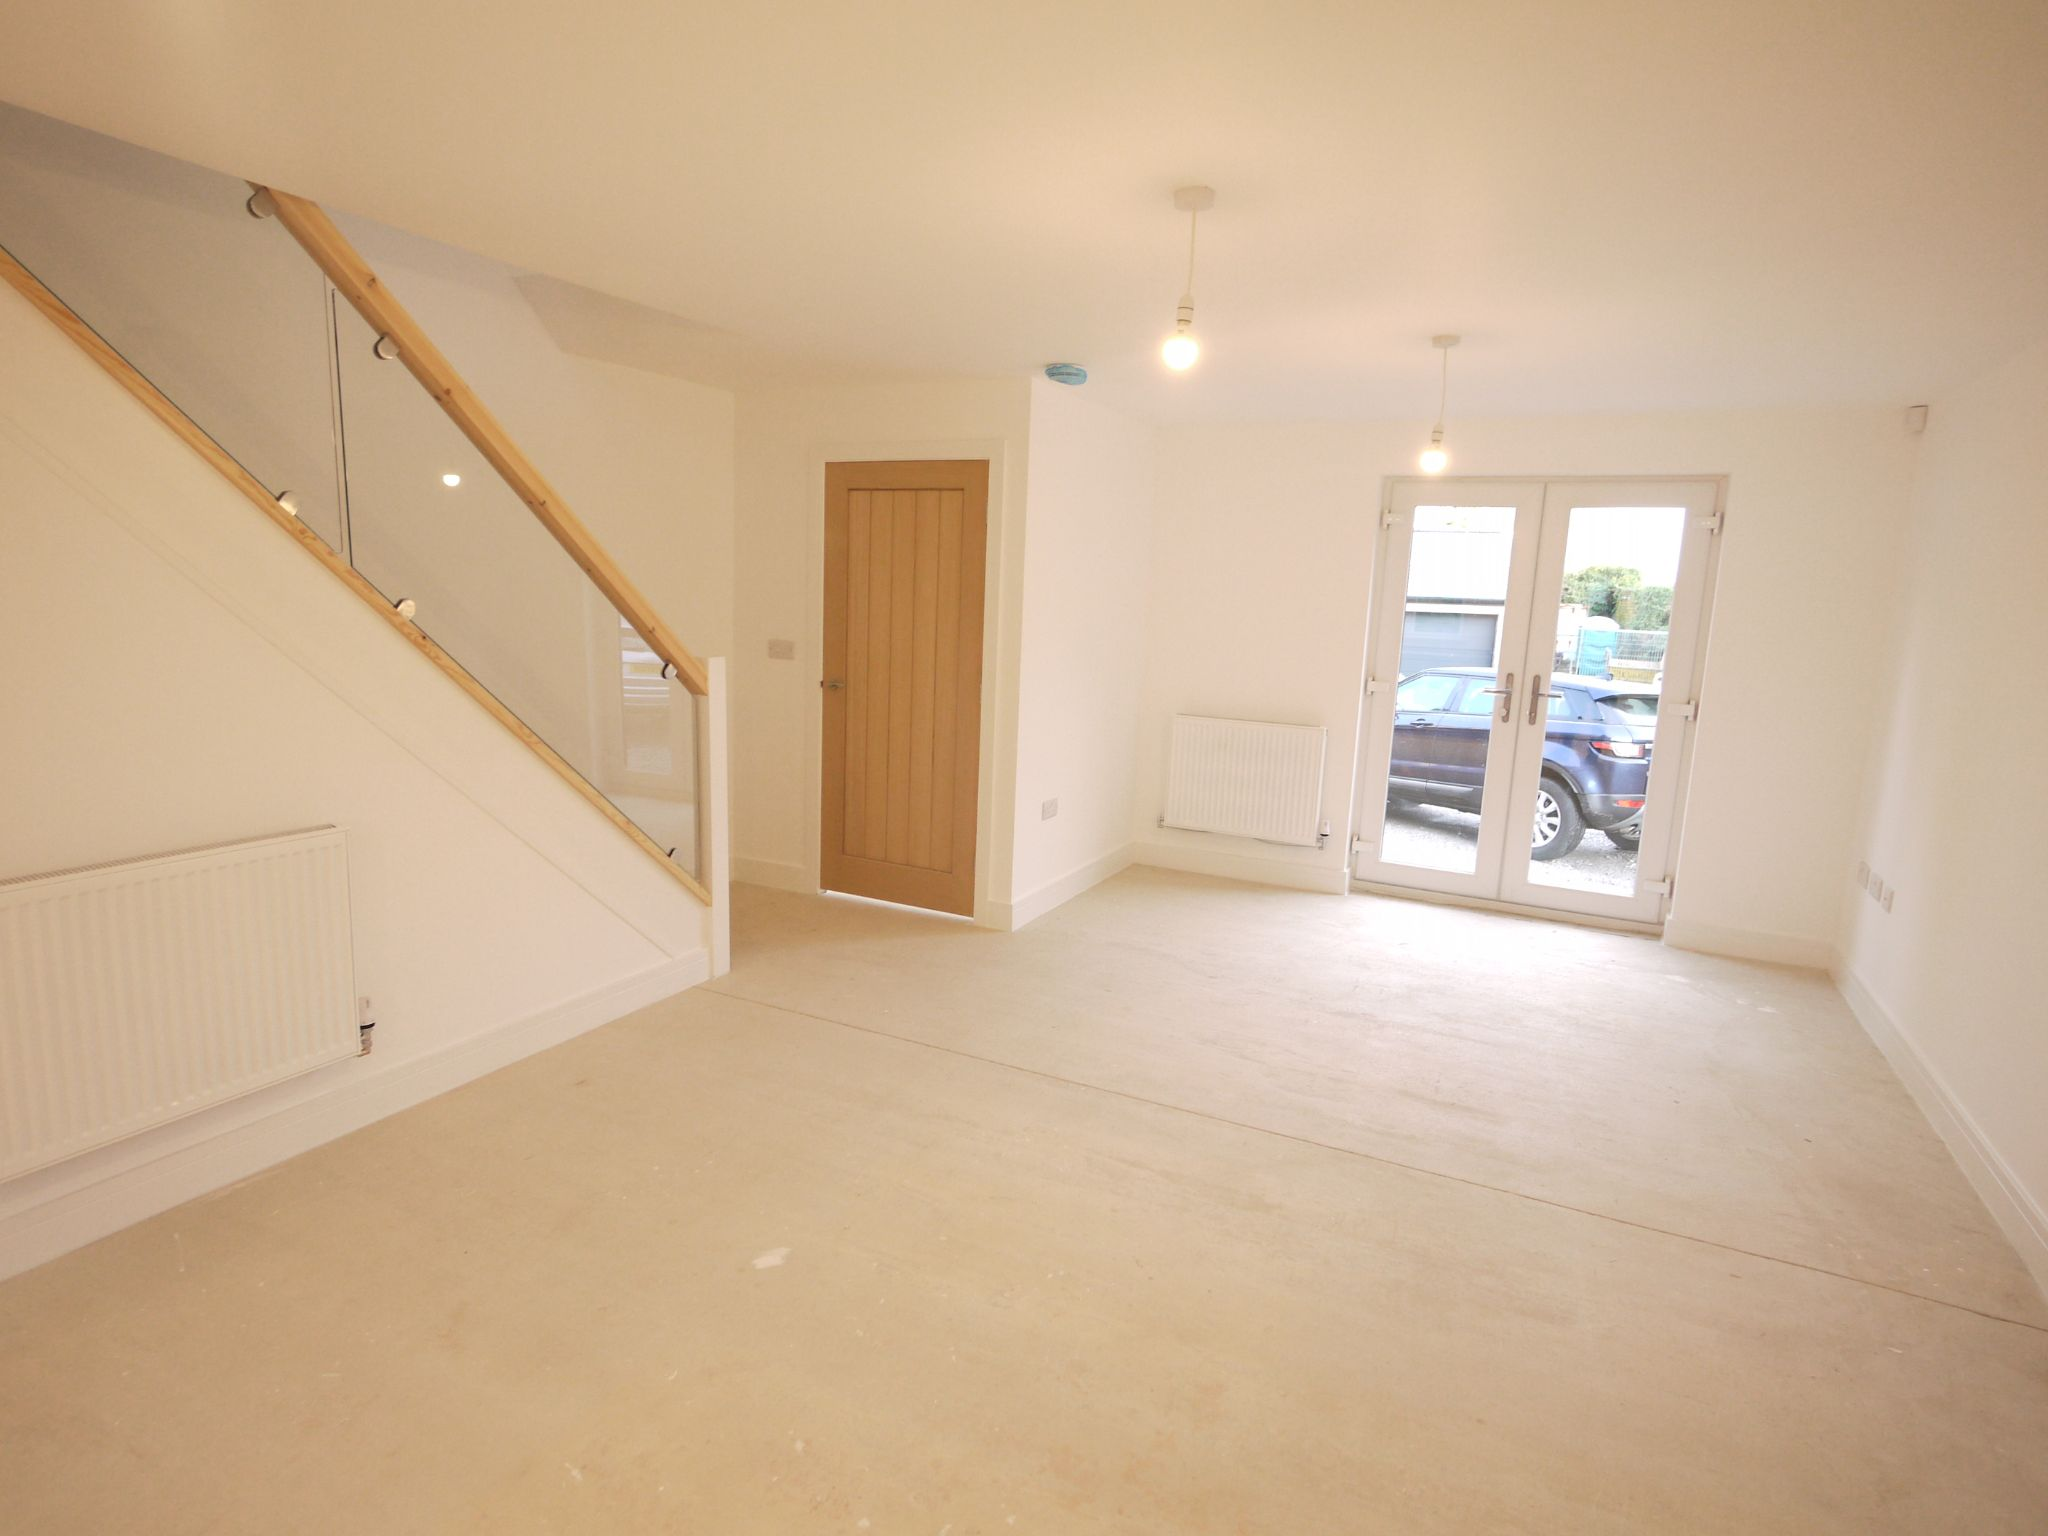 3 bedroom detached house SSTC in Brighouse - Photograph 2.